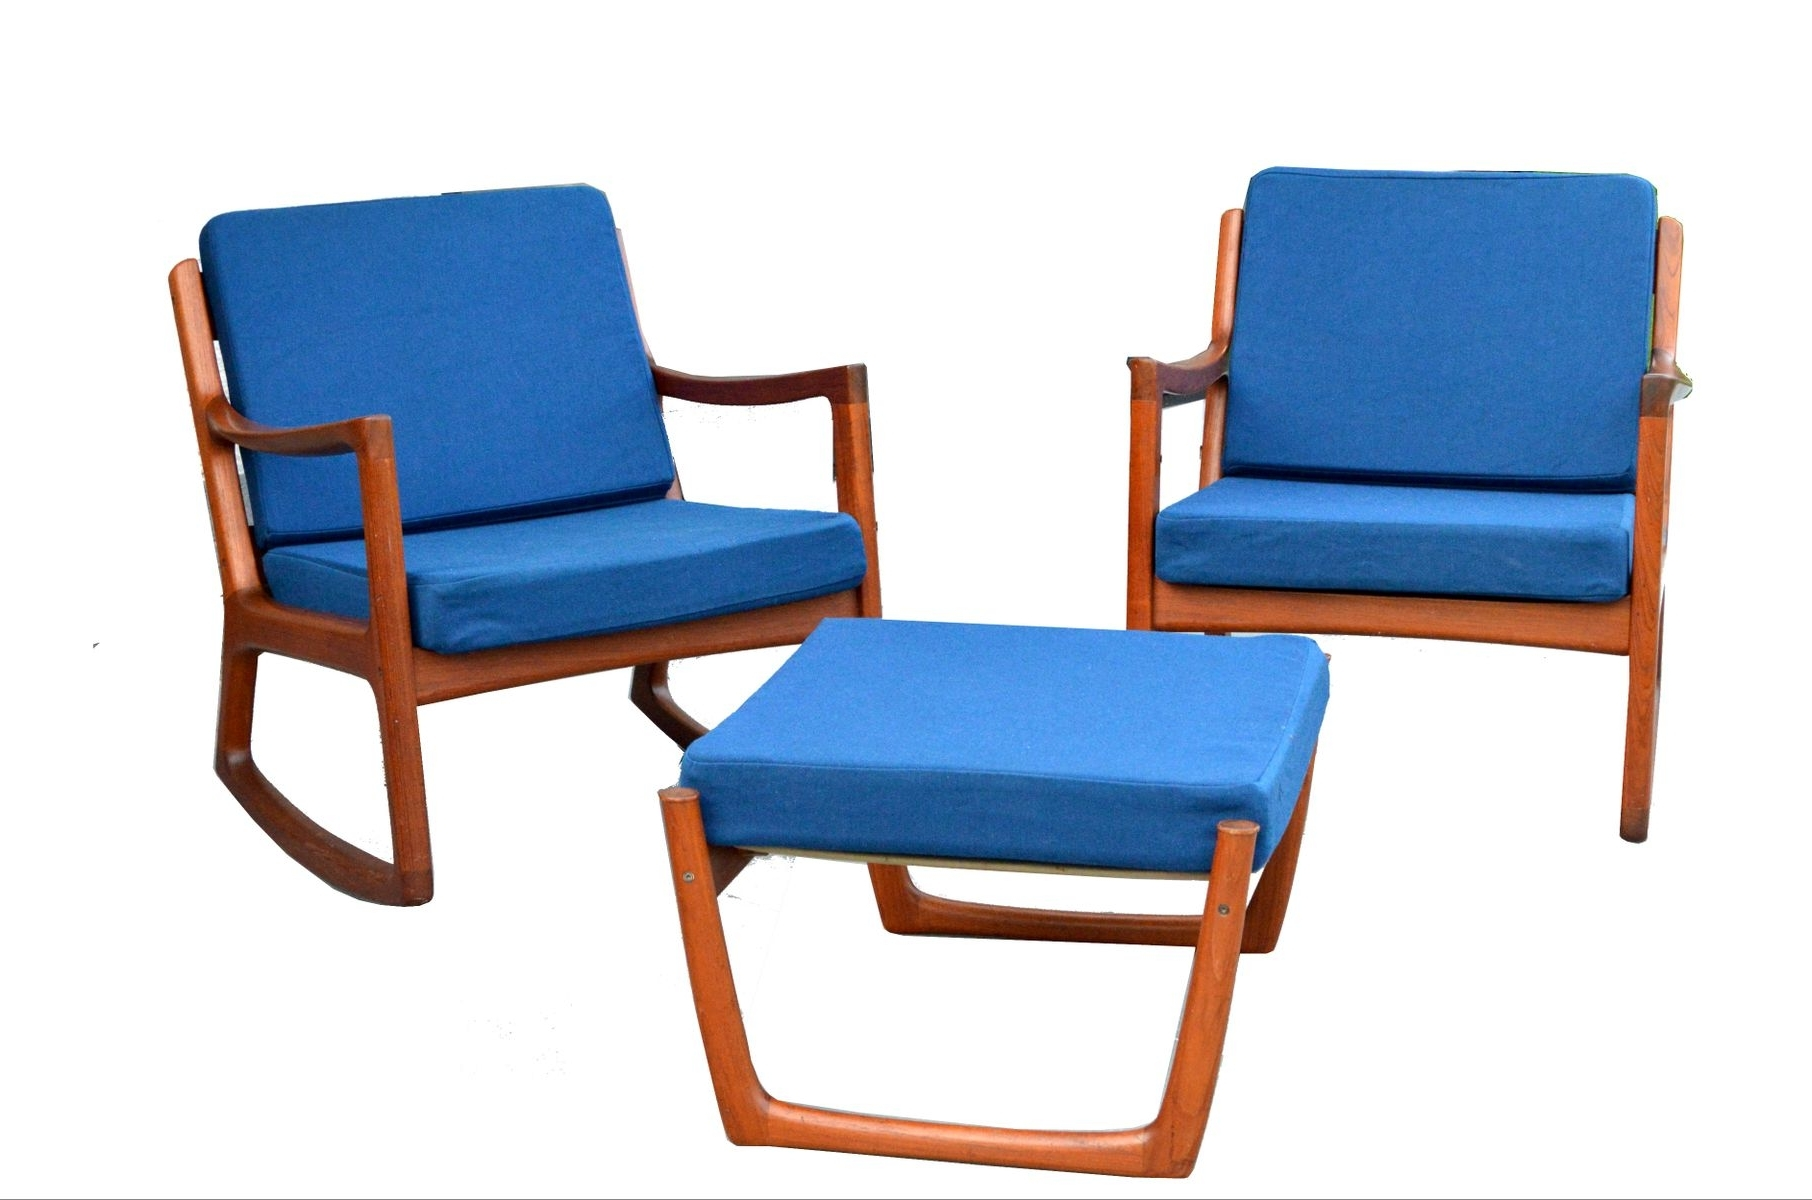 Rocking Chairs With Footstool Throughout Most Popular 2 Senator Rocking Chairs & 1 Footstoolole Wanscher For France (View 9 of 15)